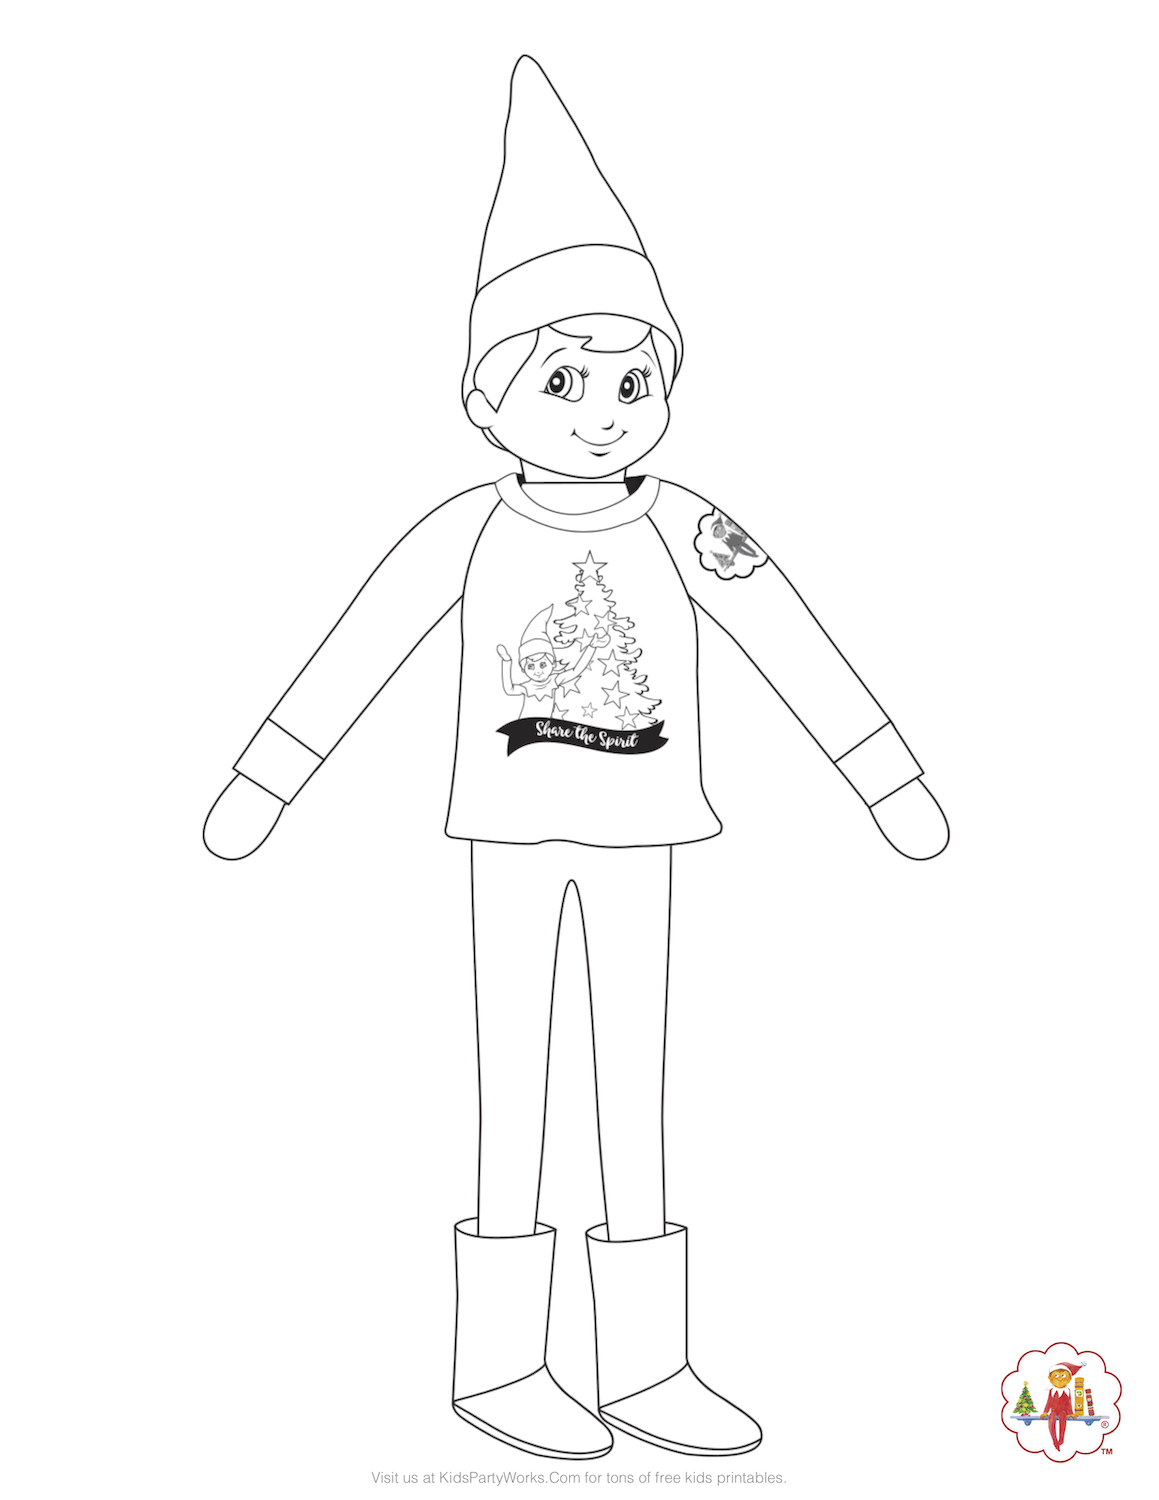 Elf On The Shelf Coloring Page He S Comfy And Cozy In His Holiday Sweats Free Christmas Coloring Pages Christmas Coloring Pages Awesome Elf On The Shelf Ideas